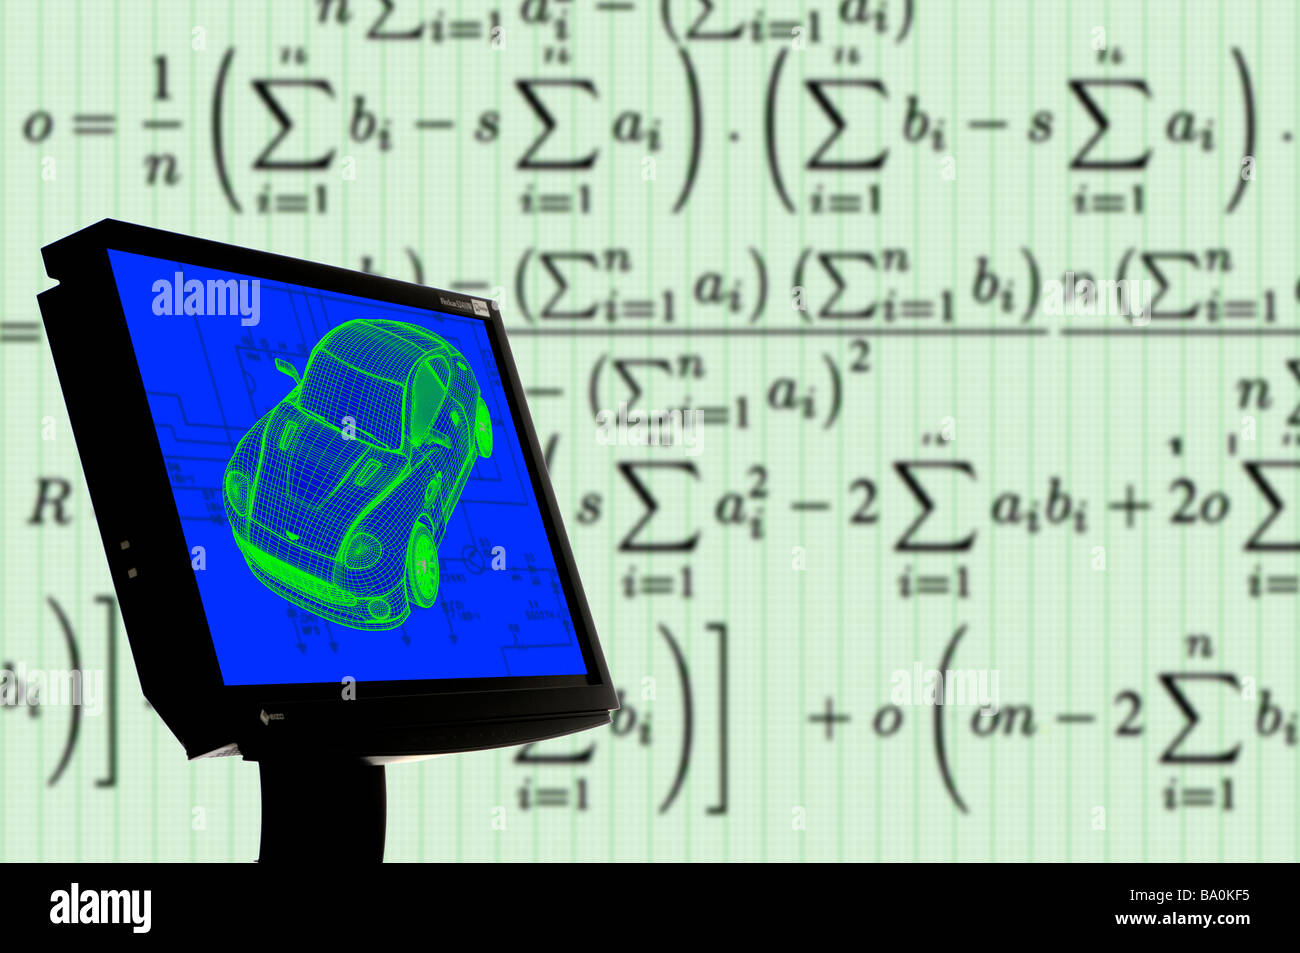 3d Wire Frame Image Of Car On Computer Screen Math Symbols In Stock